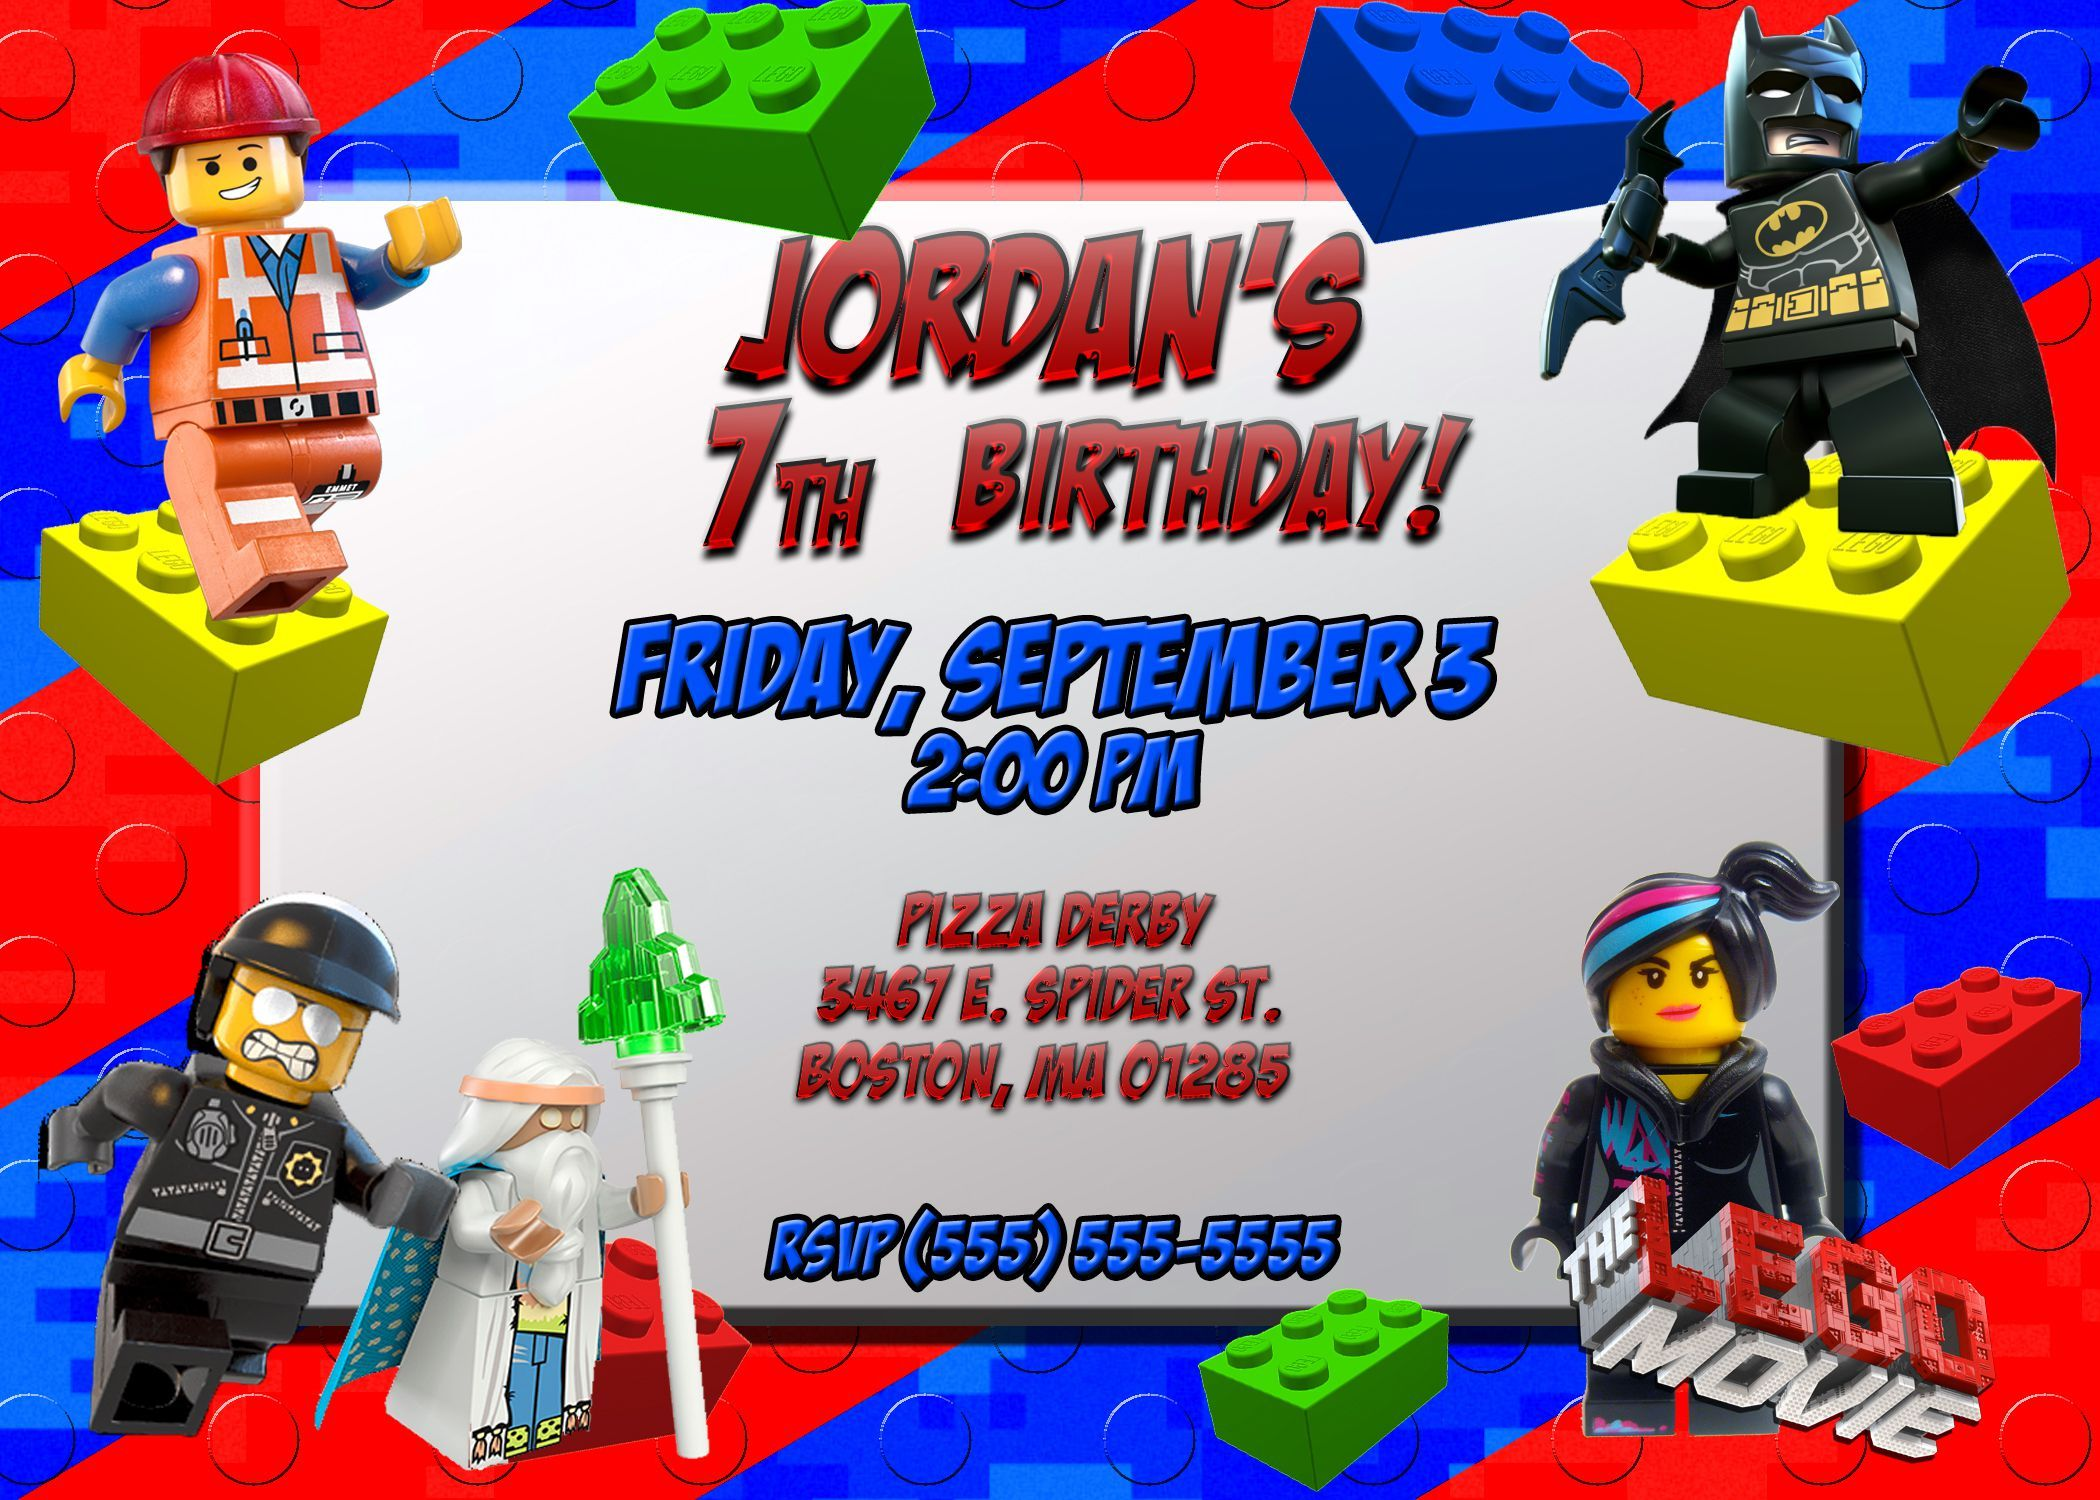 Lego Birthday Party Invitations Online Images - baby shower ...